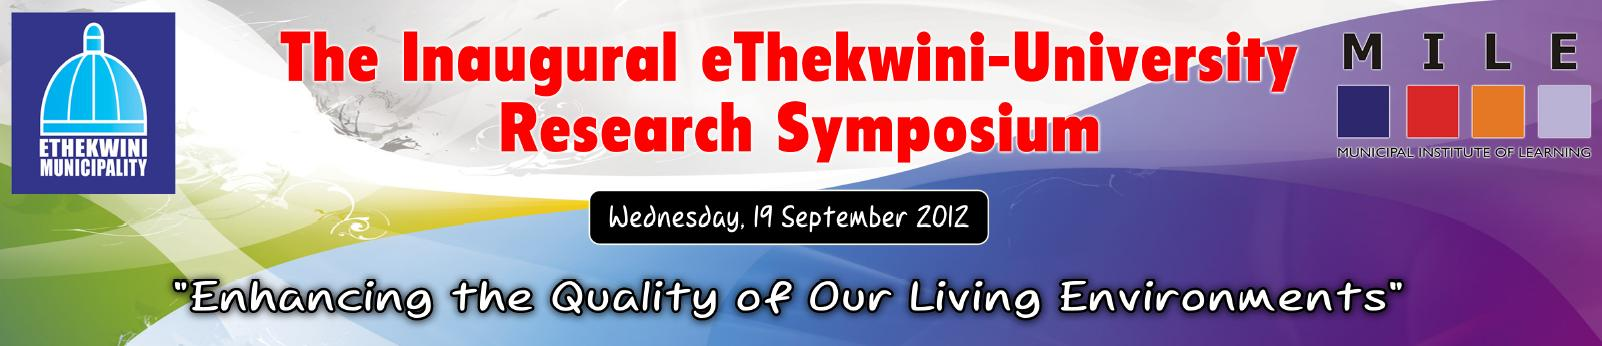 You are here: home / inaugural ethekwini-university research symposium